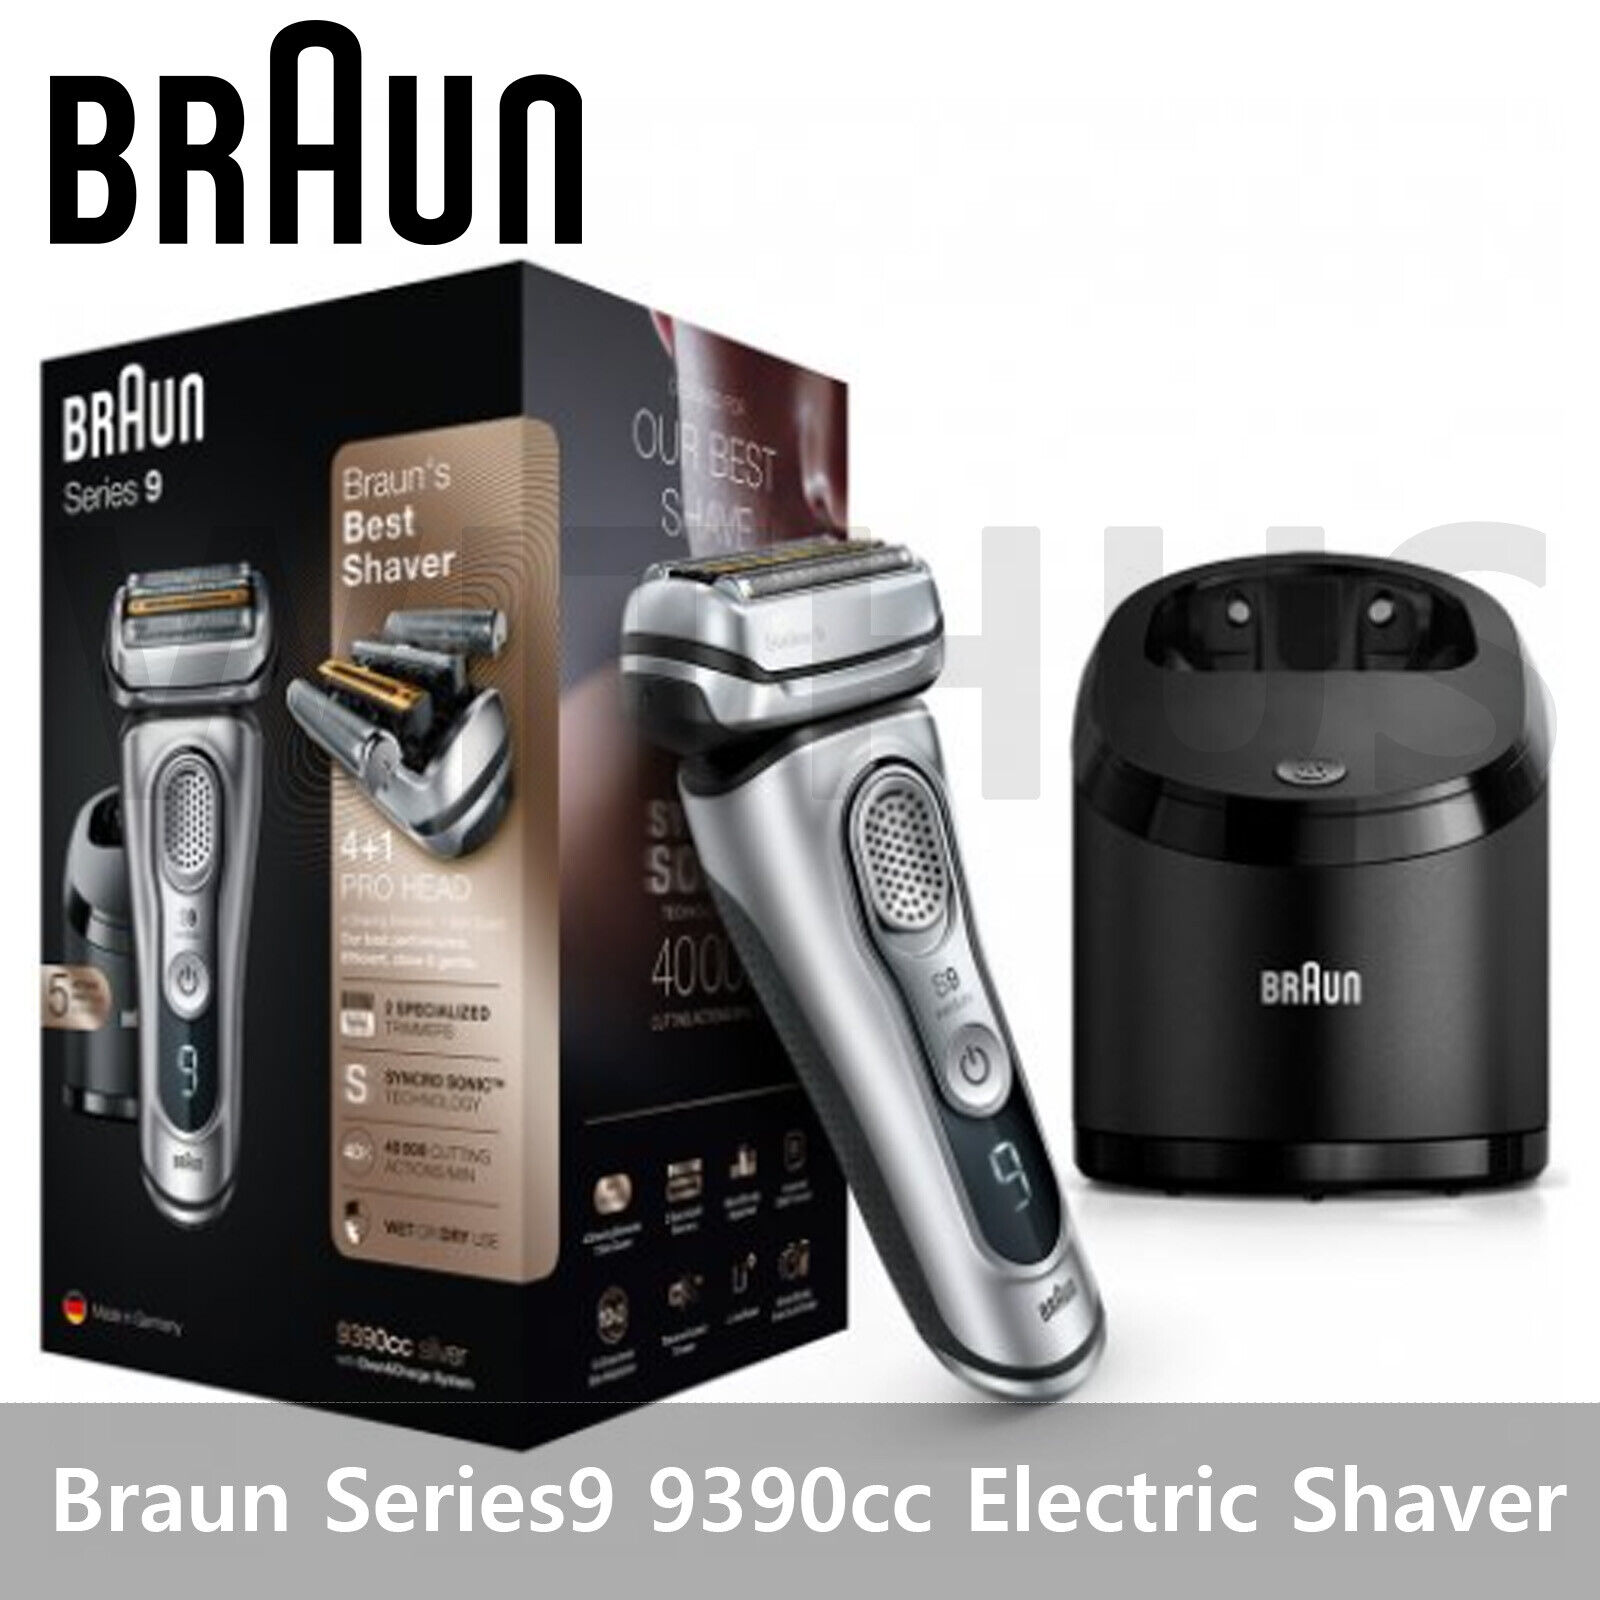 Braun Series 9 9390cc Men's Electric Shaver Wet & Dry | eBay